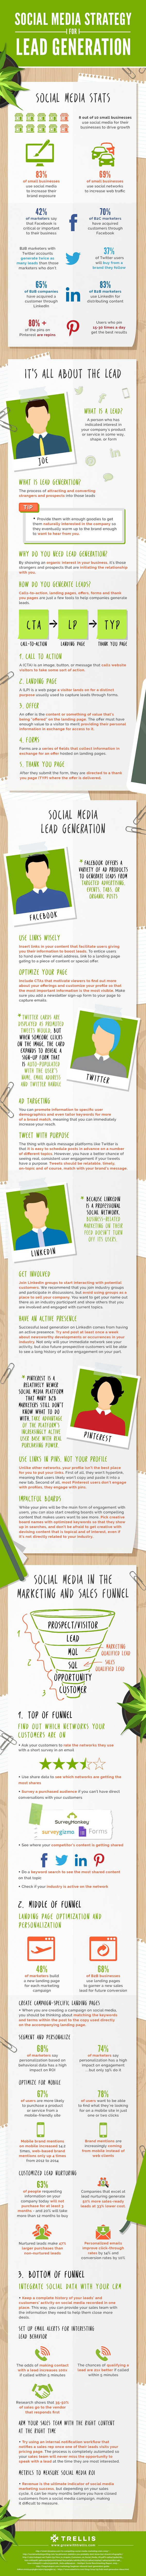 Infographic: How to Get More Leads With Social Media